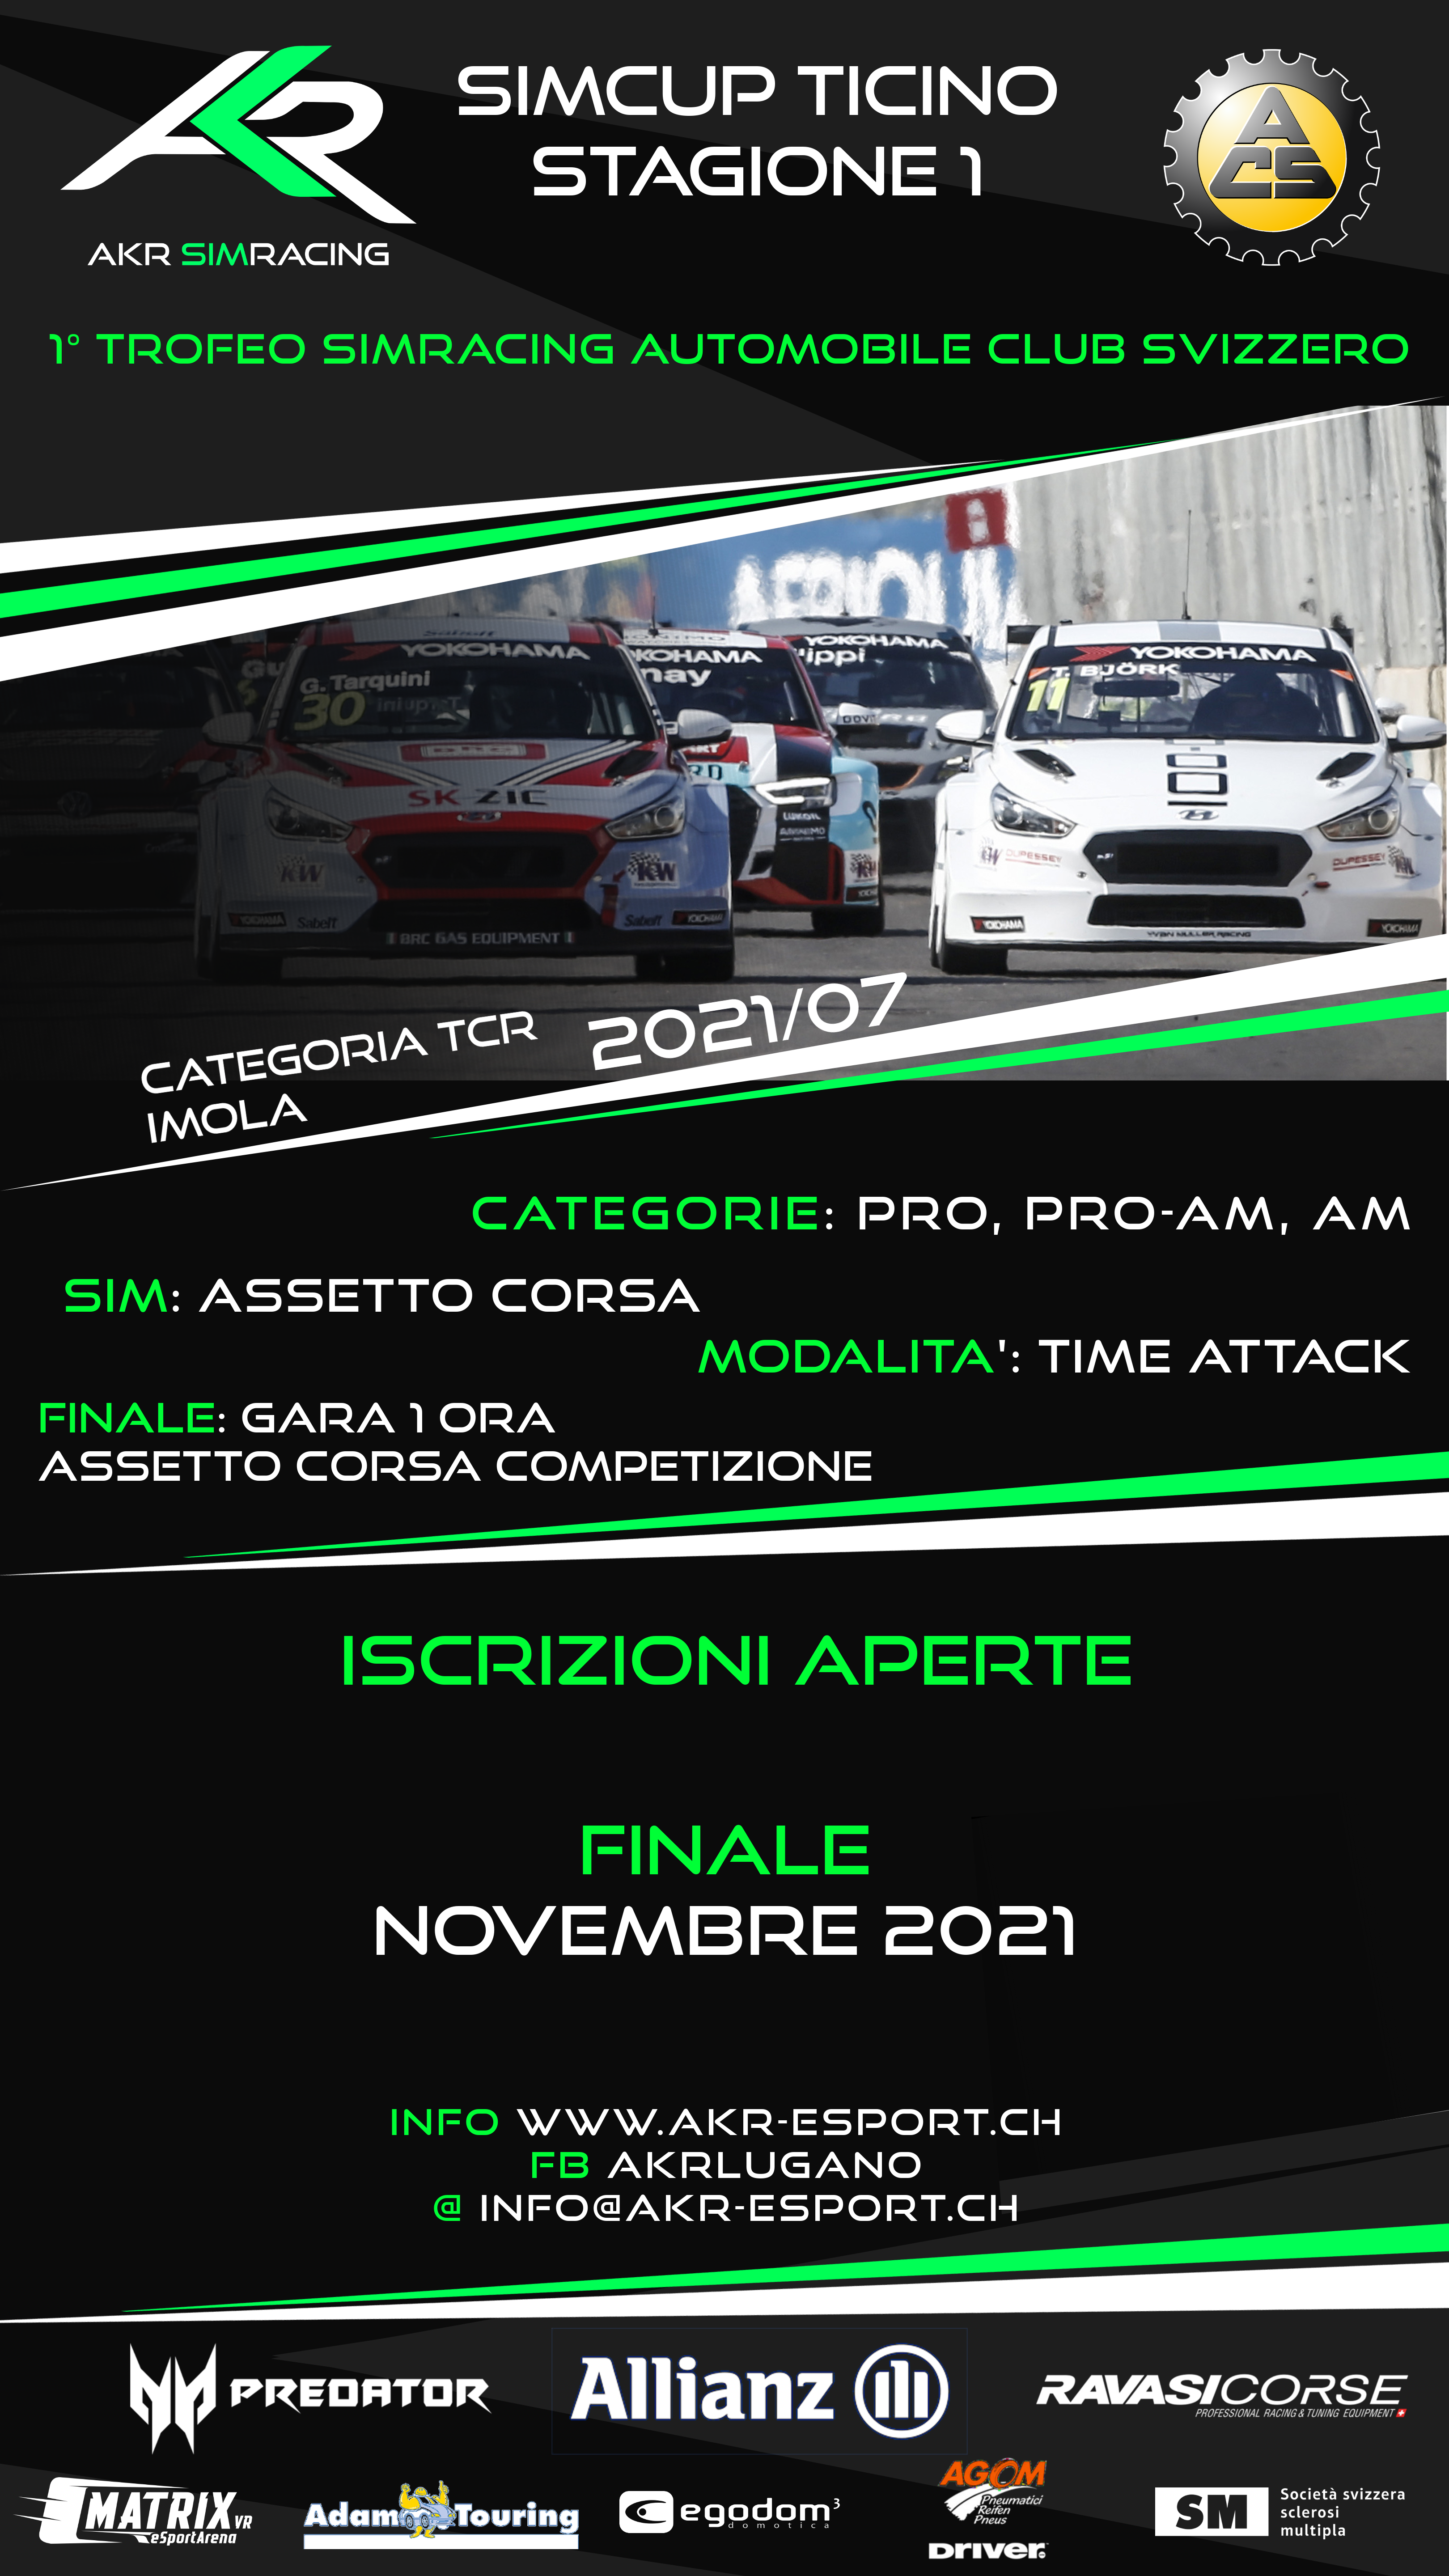 SIMCUP TICINO TCR